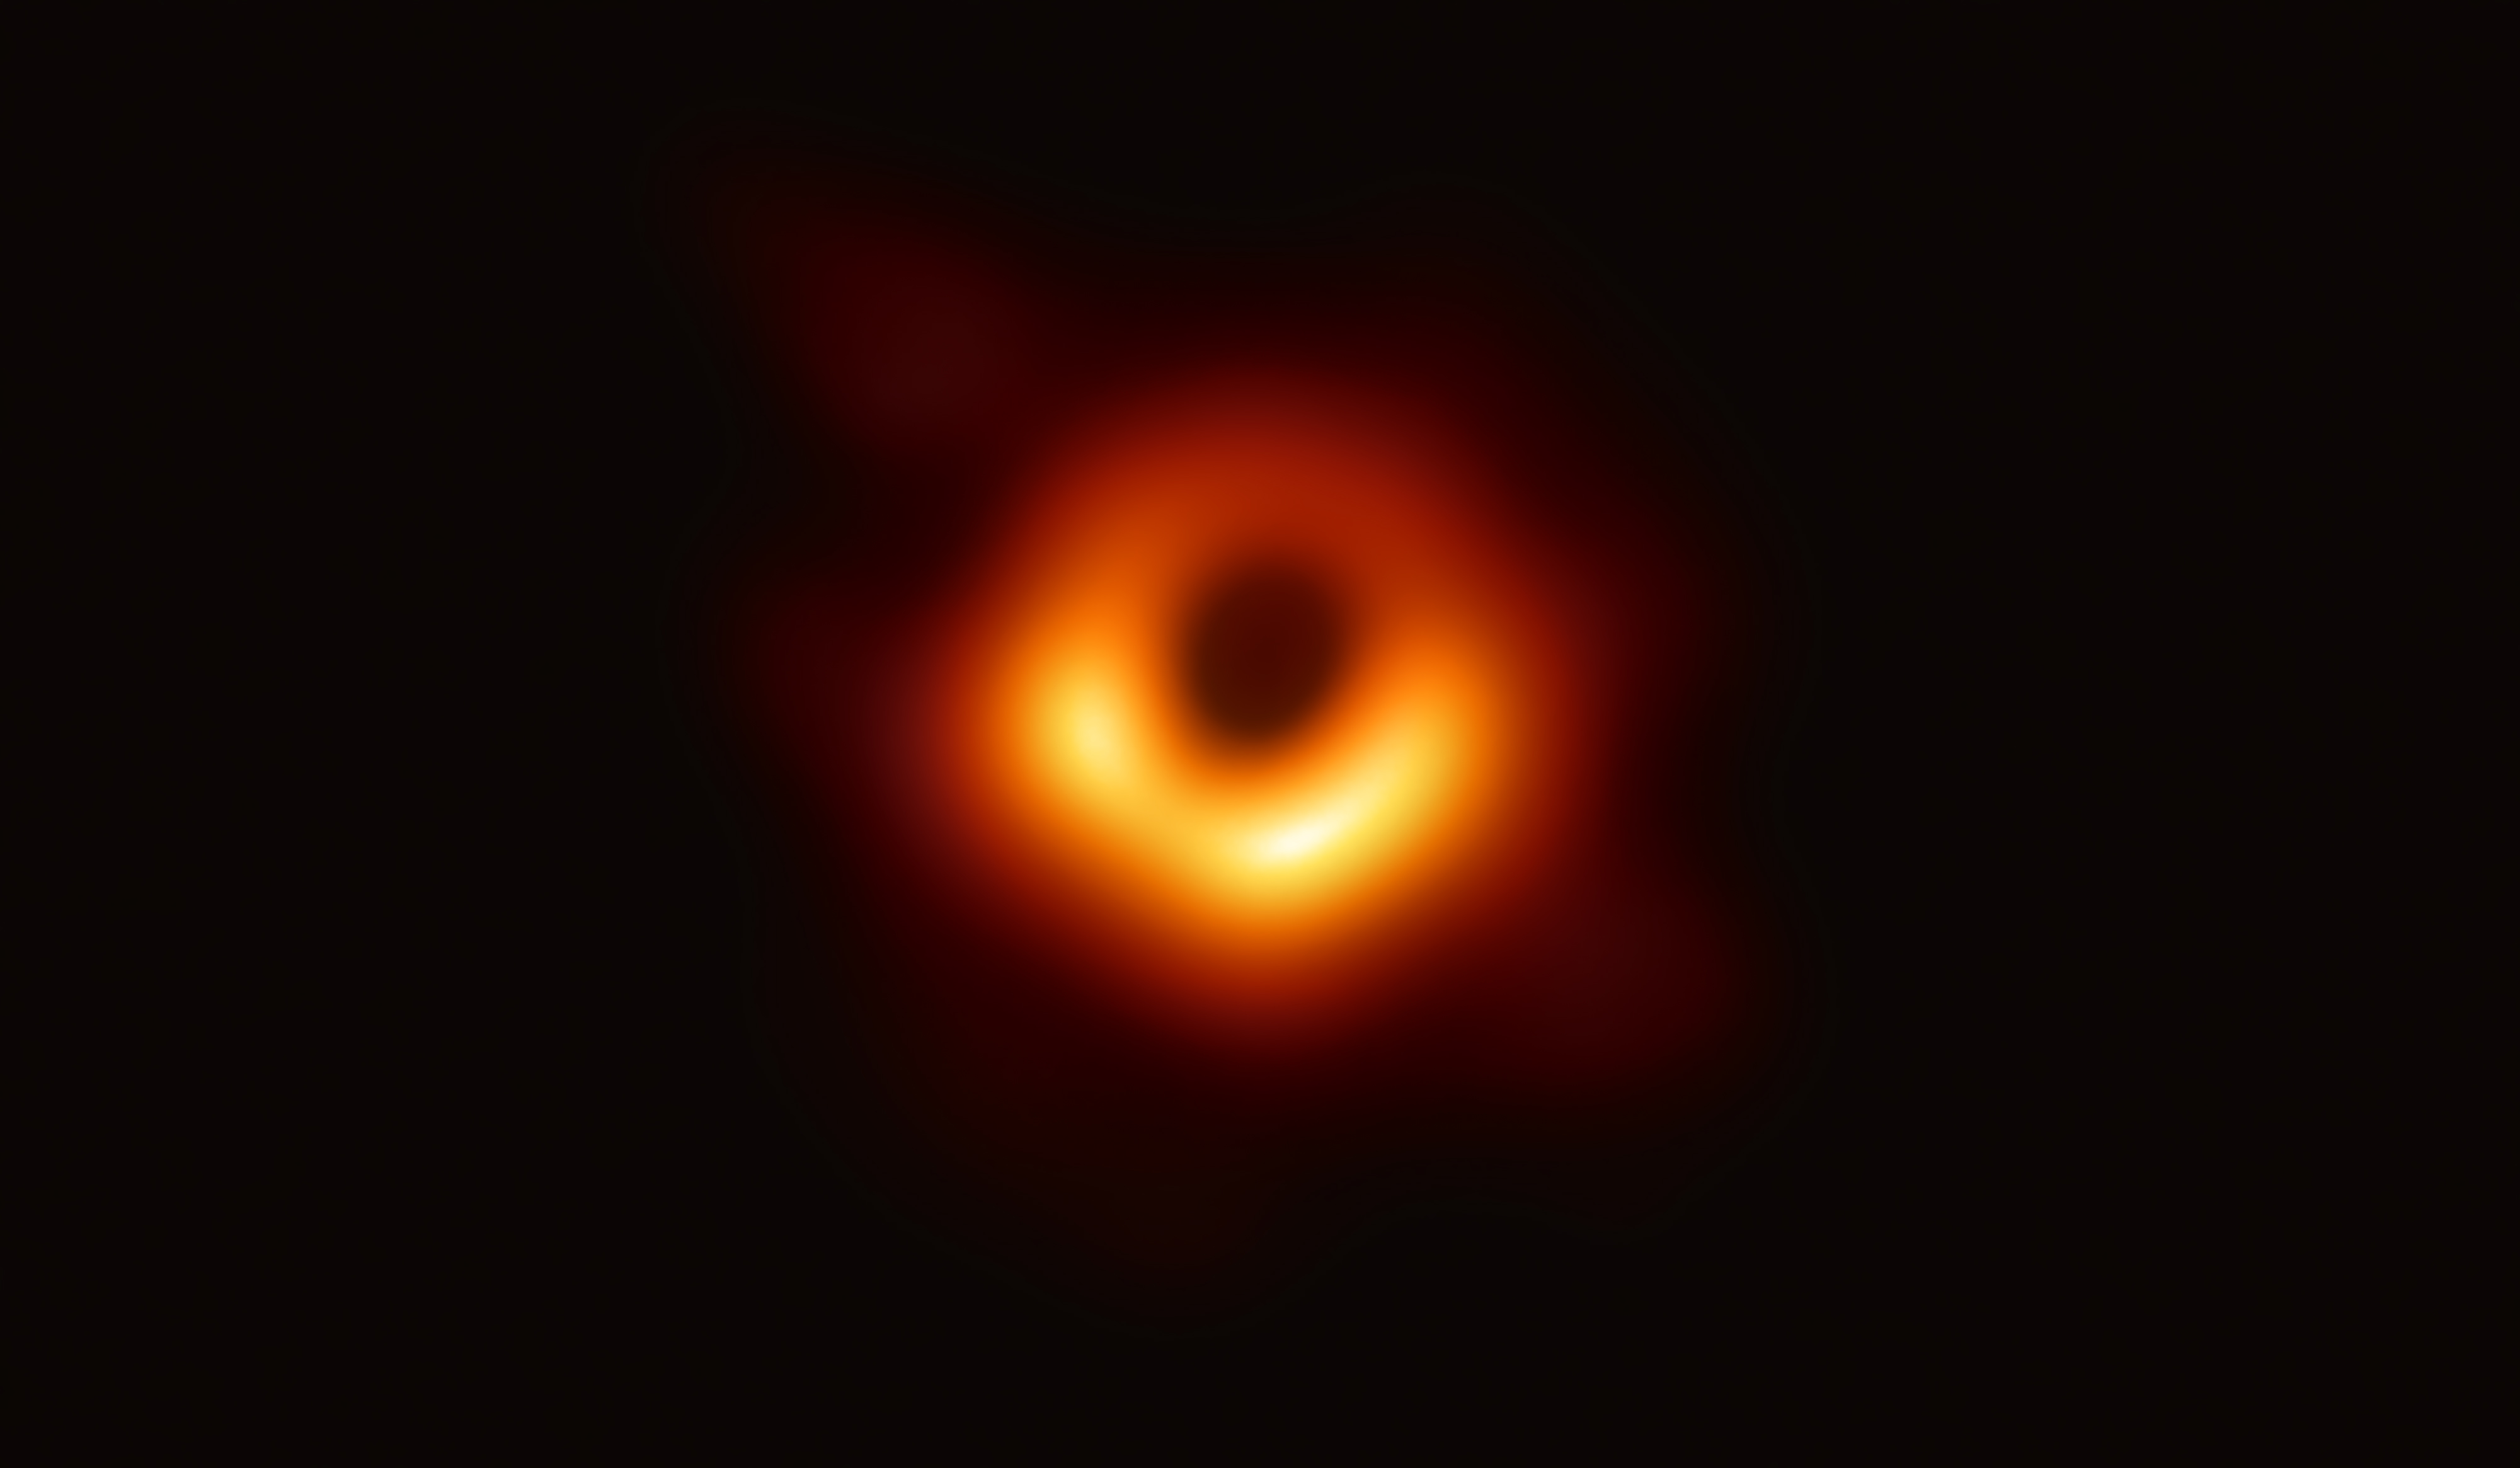 Photo: Using the Event Horizon Telescope, scientists obtained an image of the black hole at the center of galaxy M87, outlined by emission from hot gas swirling around it under the influence of strong gravity near its event horizon. Credit: Event Horizon Telescope collaboration et al.